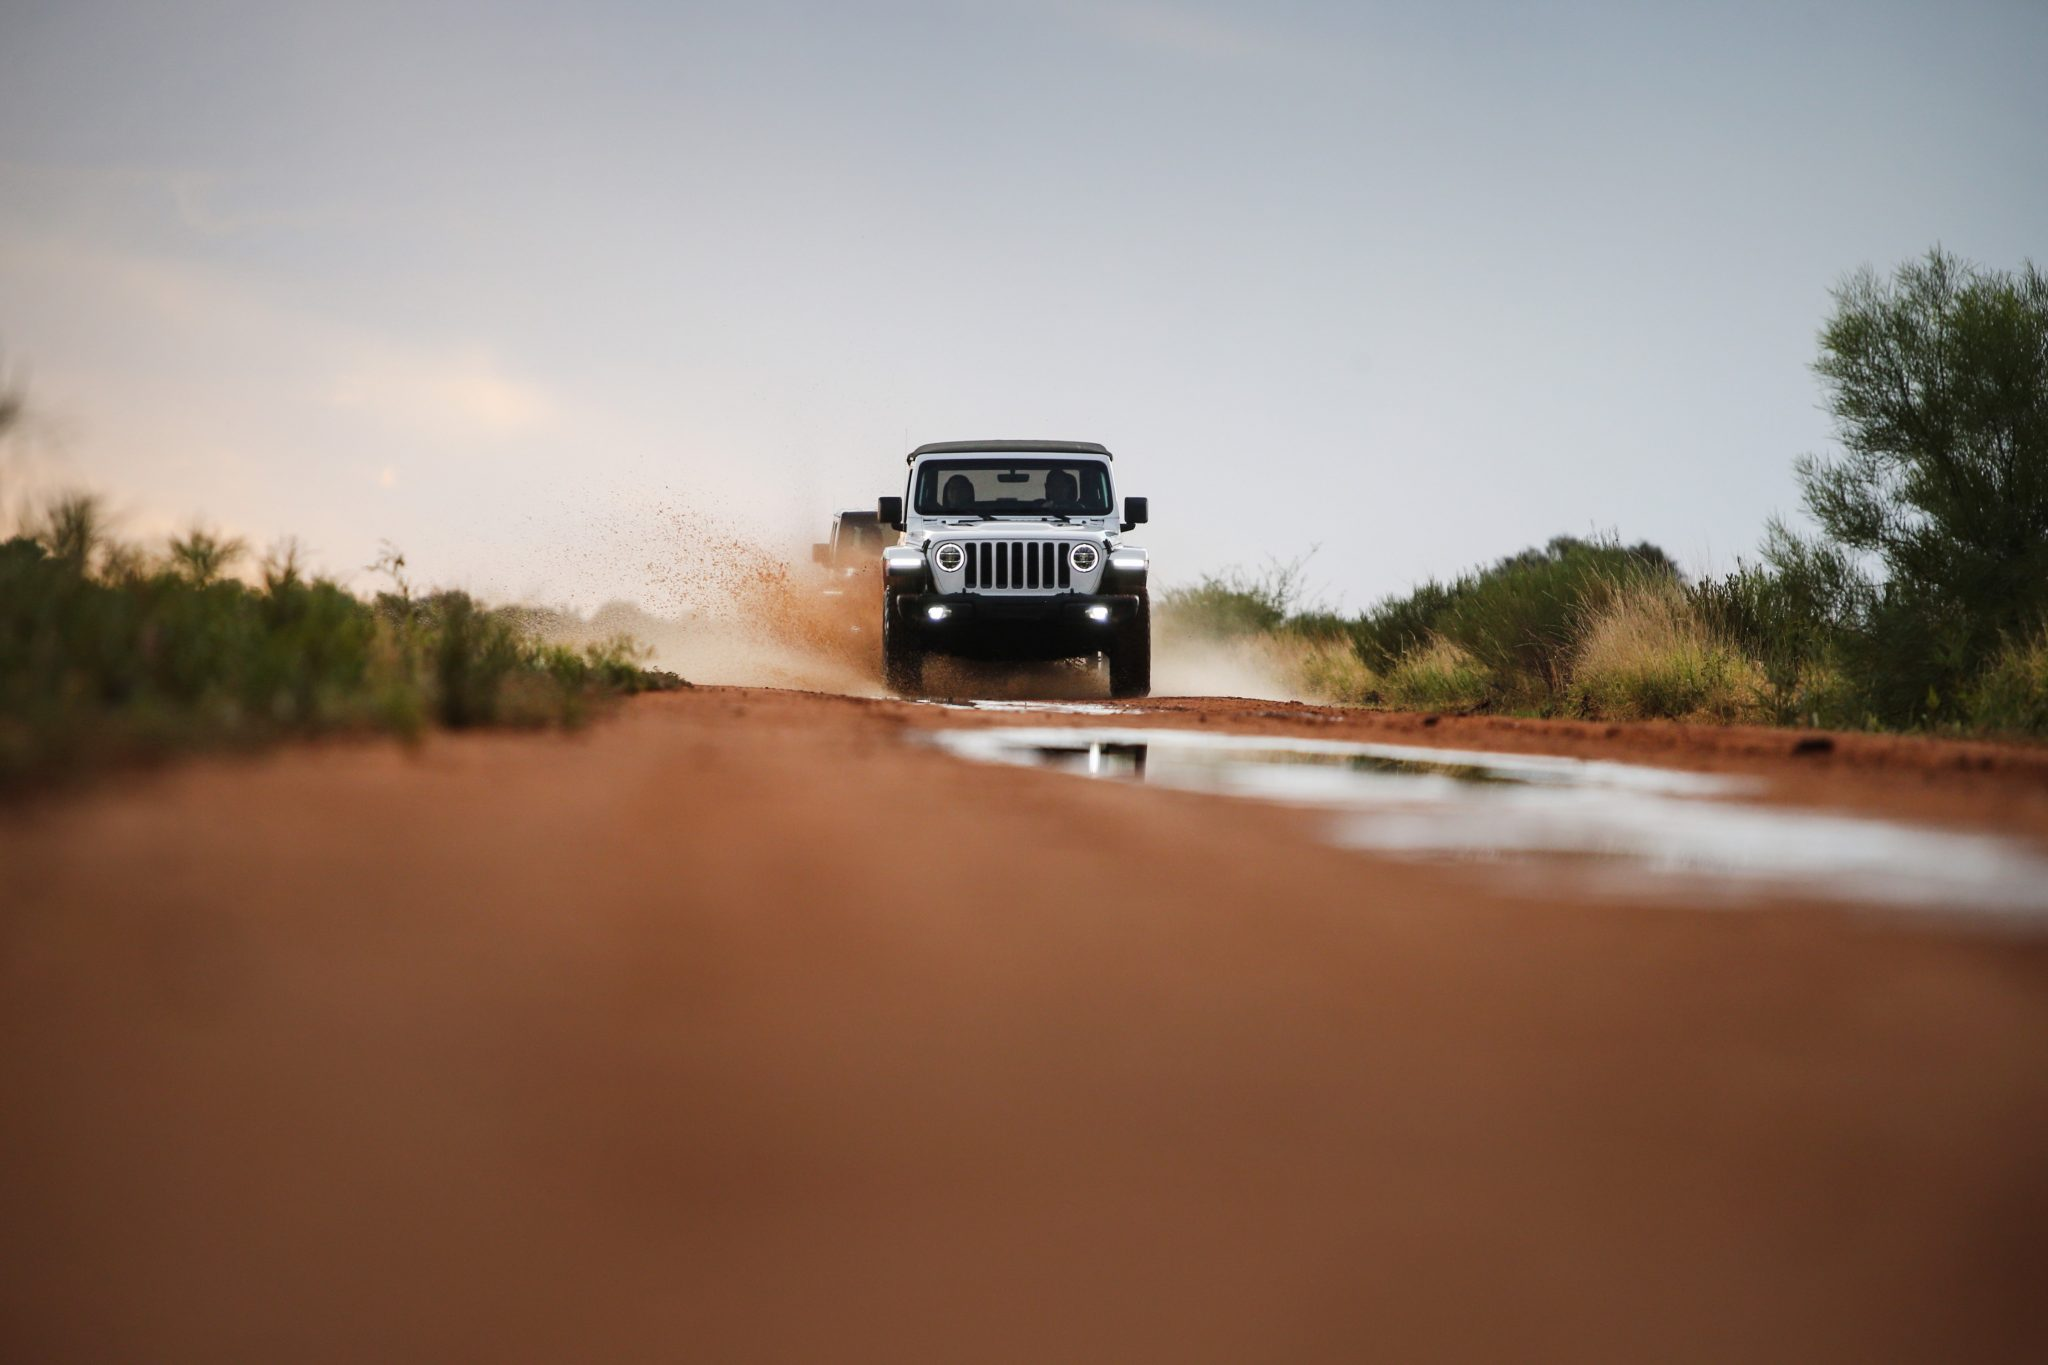 Outback testing in the 2018 Jeep JL Wrangler